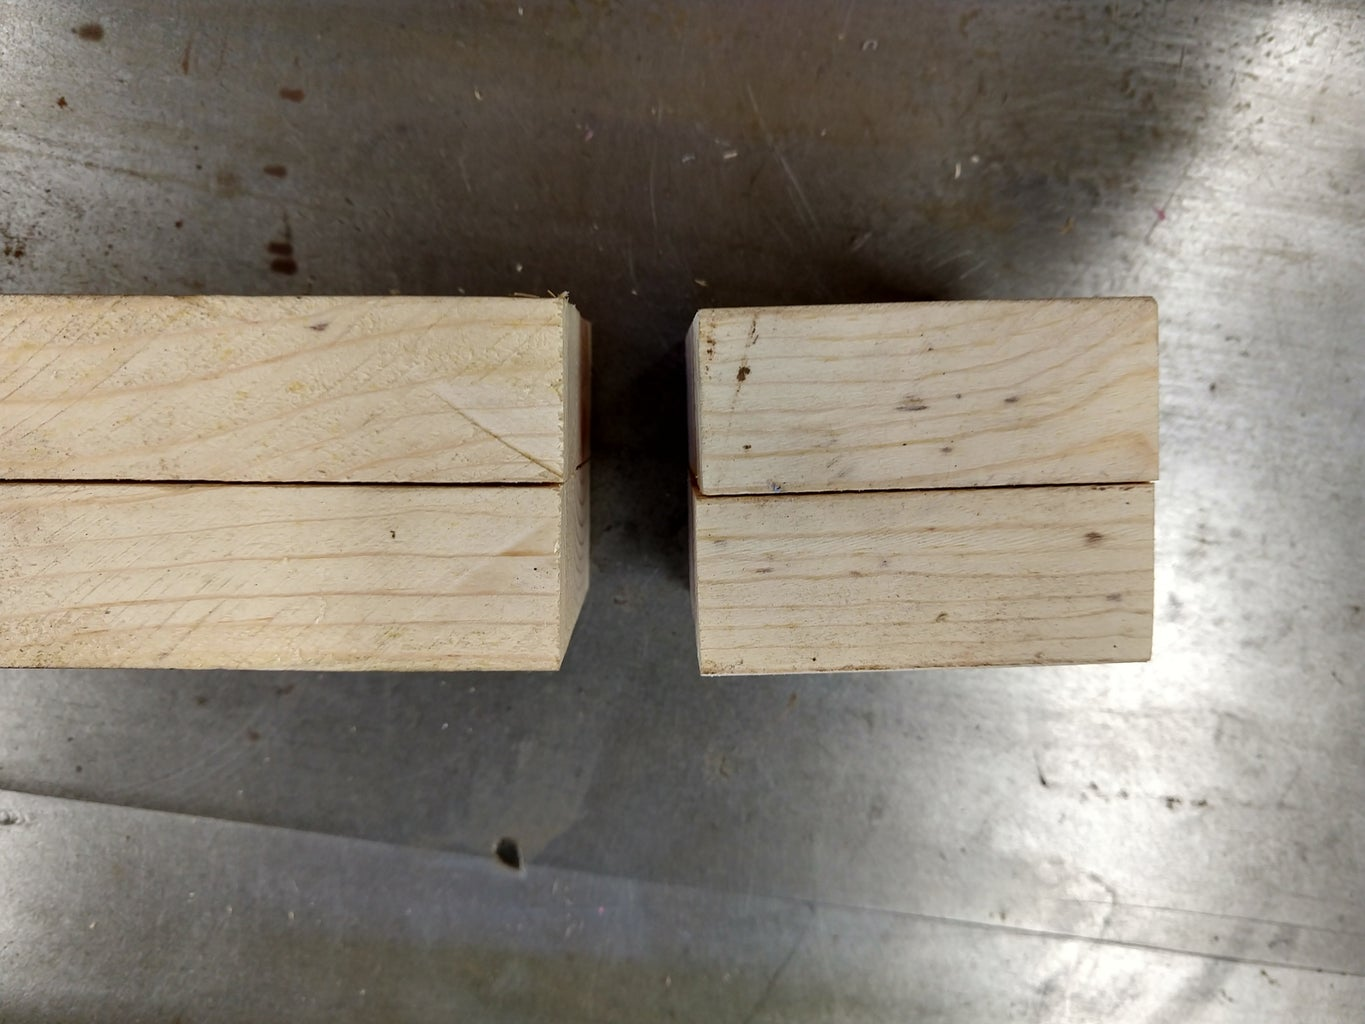 Cut Your Board and Drill Seat-post Hole